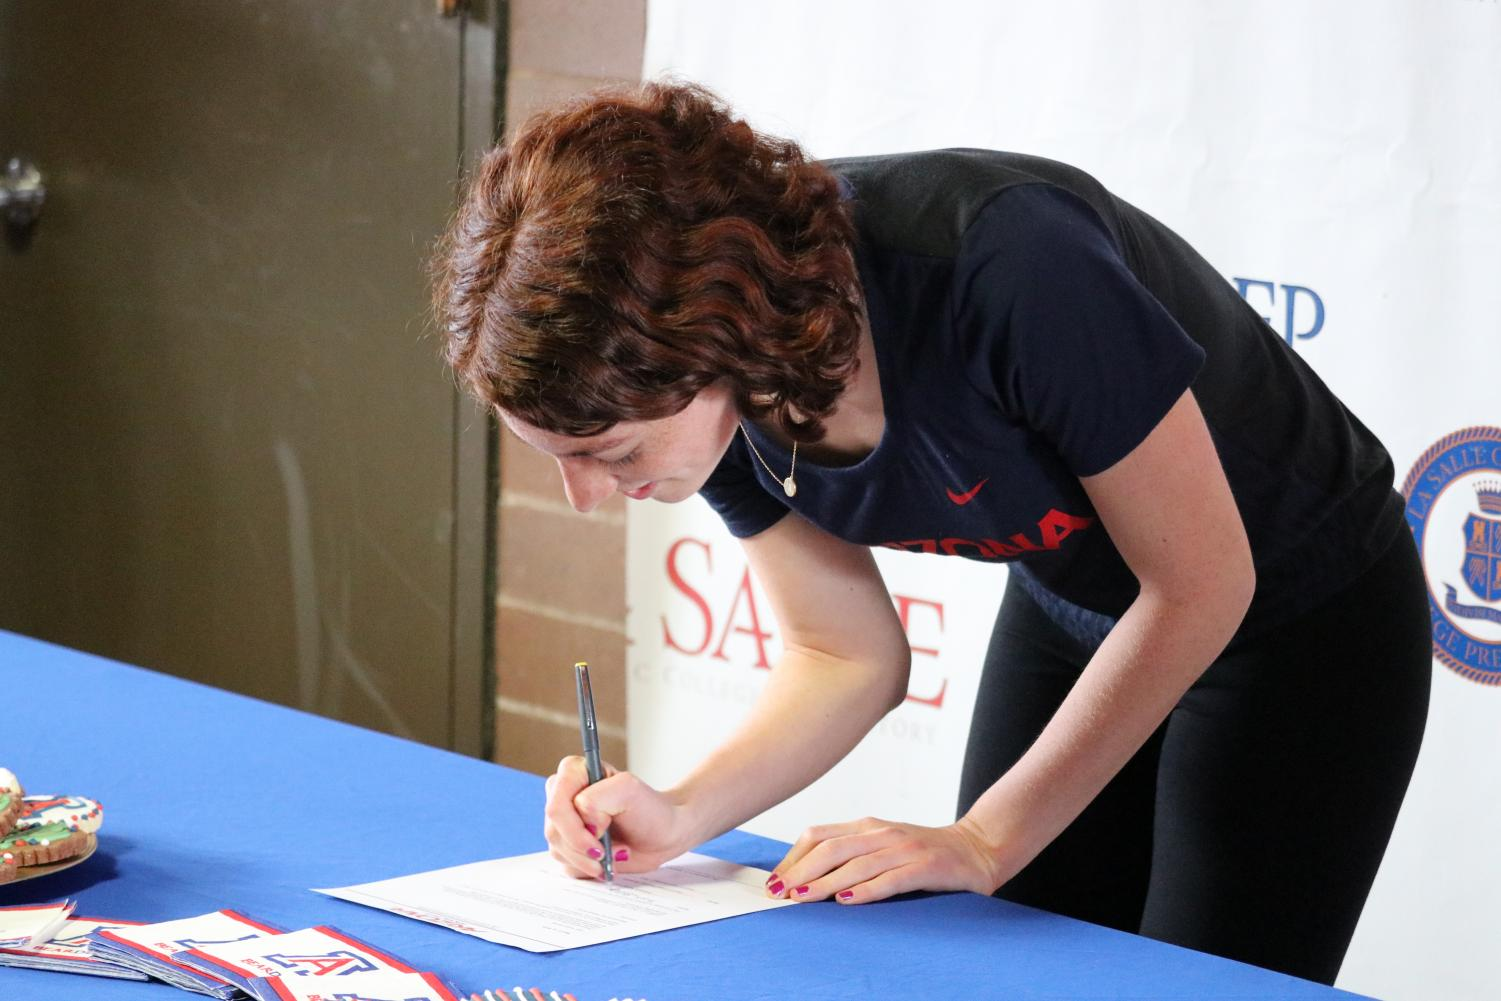 Hanley+signs+her+signature%2C+officially+committing+to+the+University+of+Arizona.